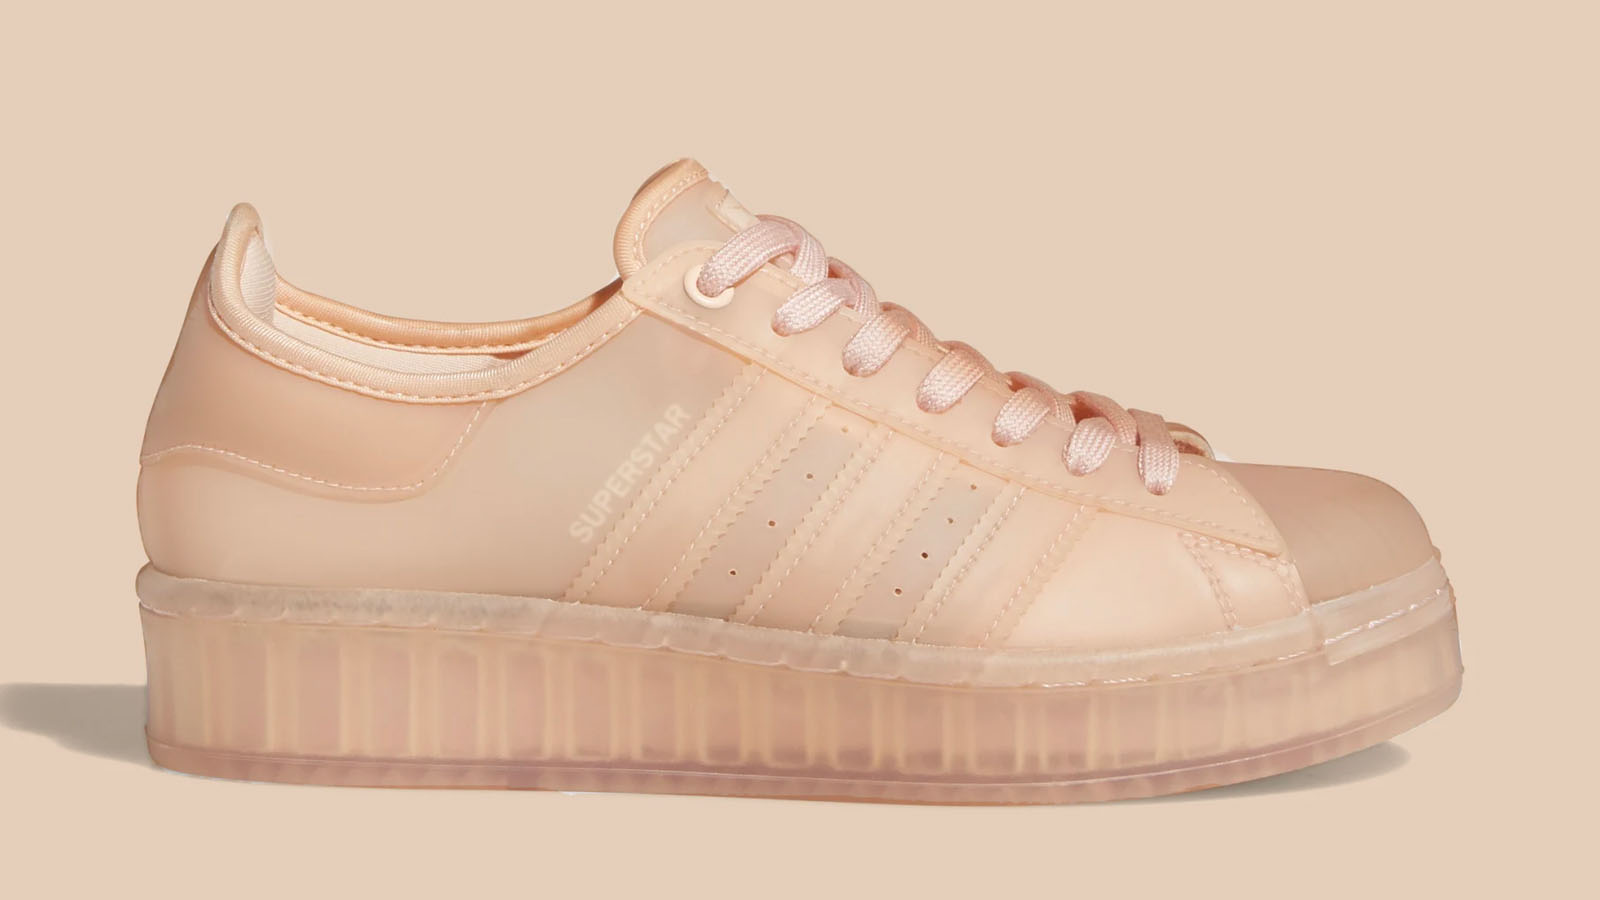 These adidas Superstar Jelly Shoes Boast Serious '90s Vibes | The ...